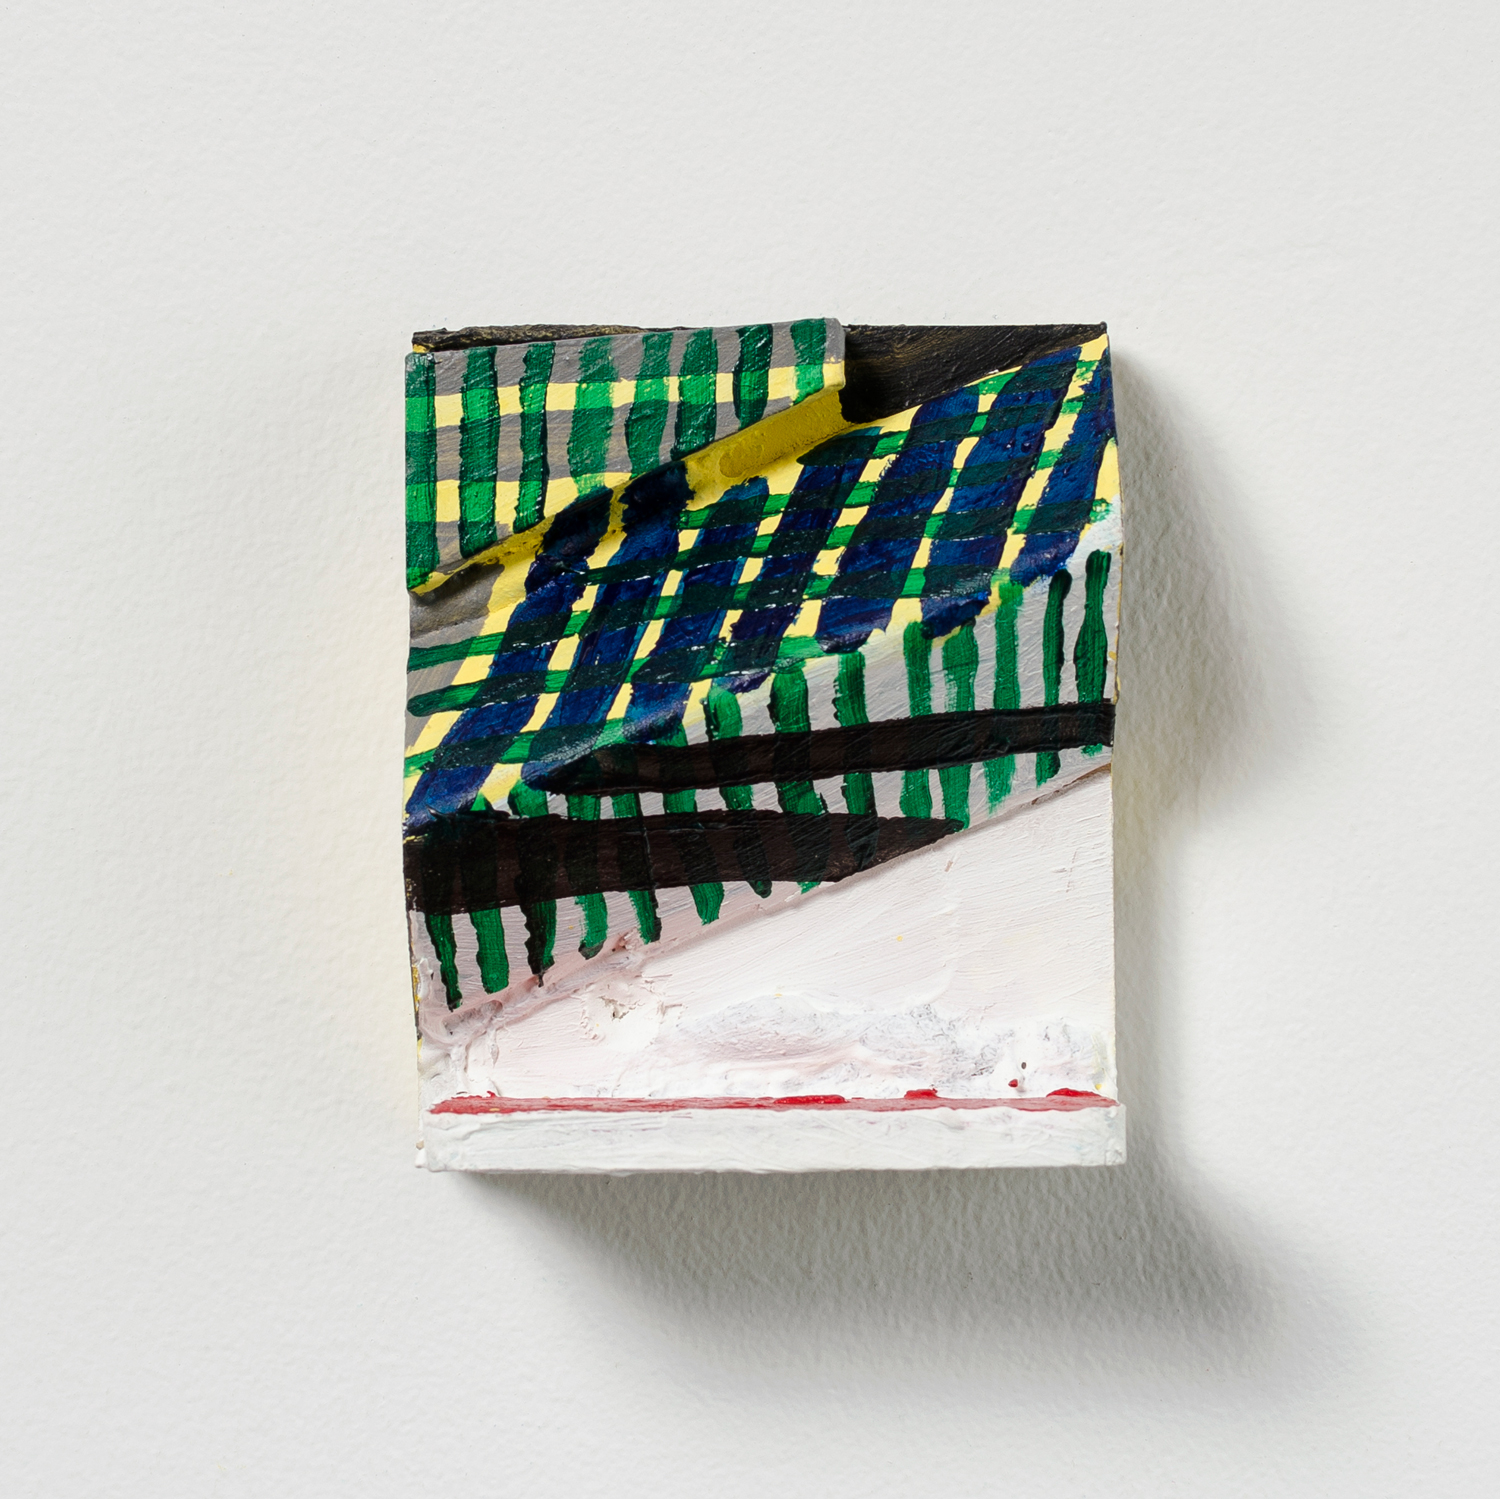 Green Weave , 2015, acrylic and graphite on wood, 4.25 x 3.5 x 2 in